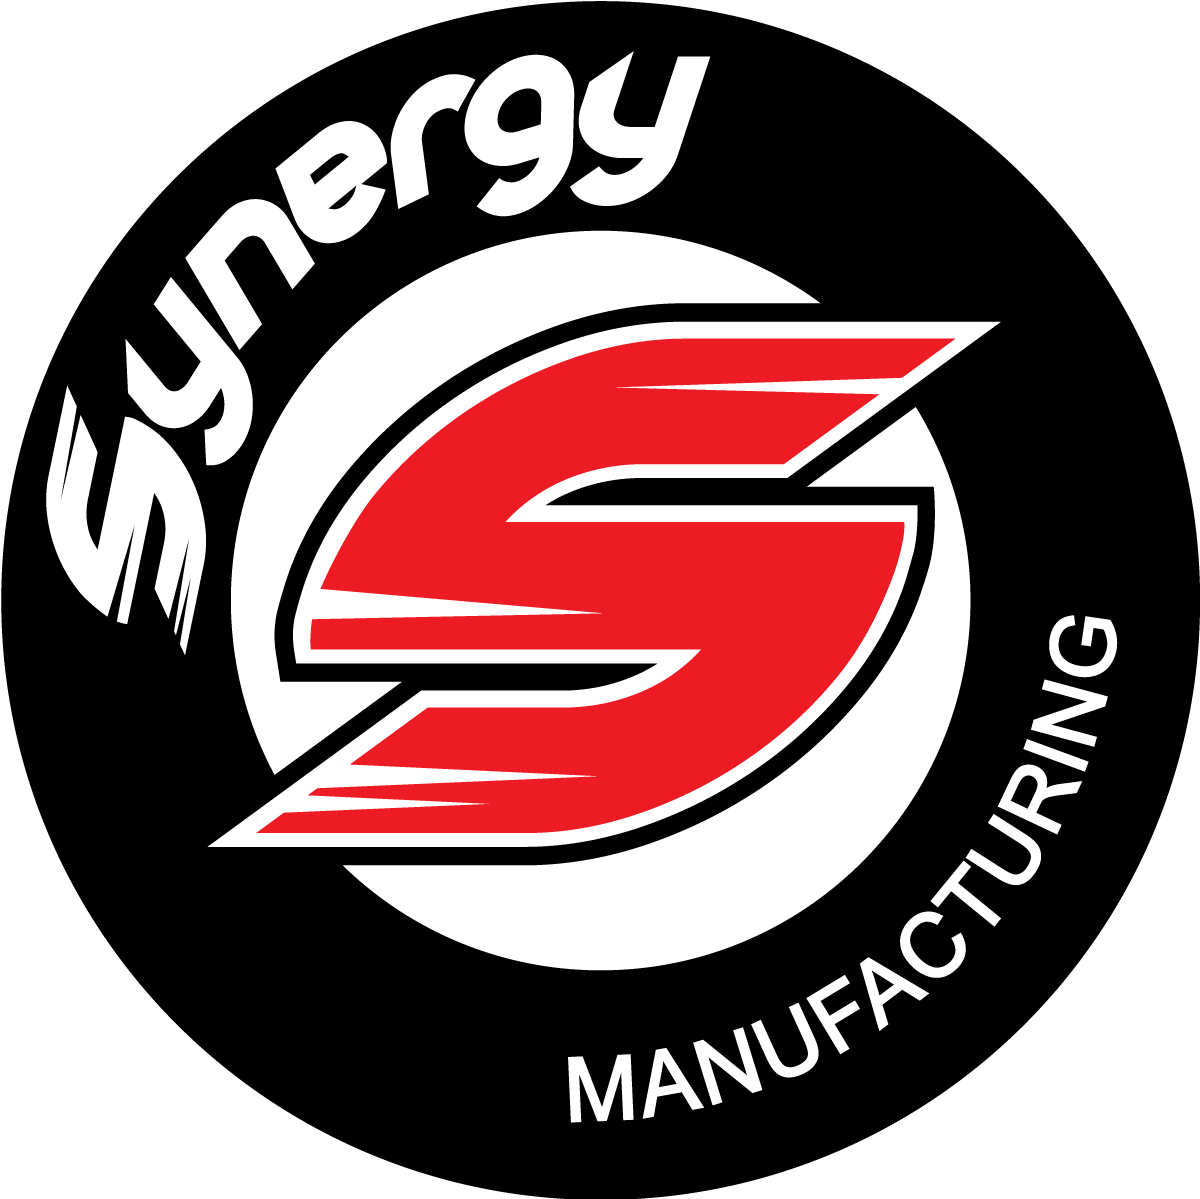 Media Synergy Manufacturing